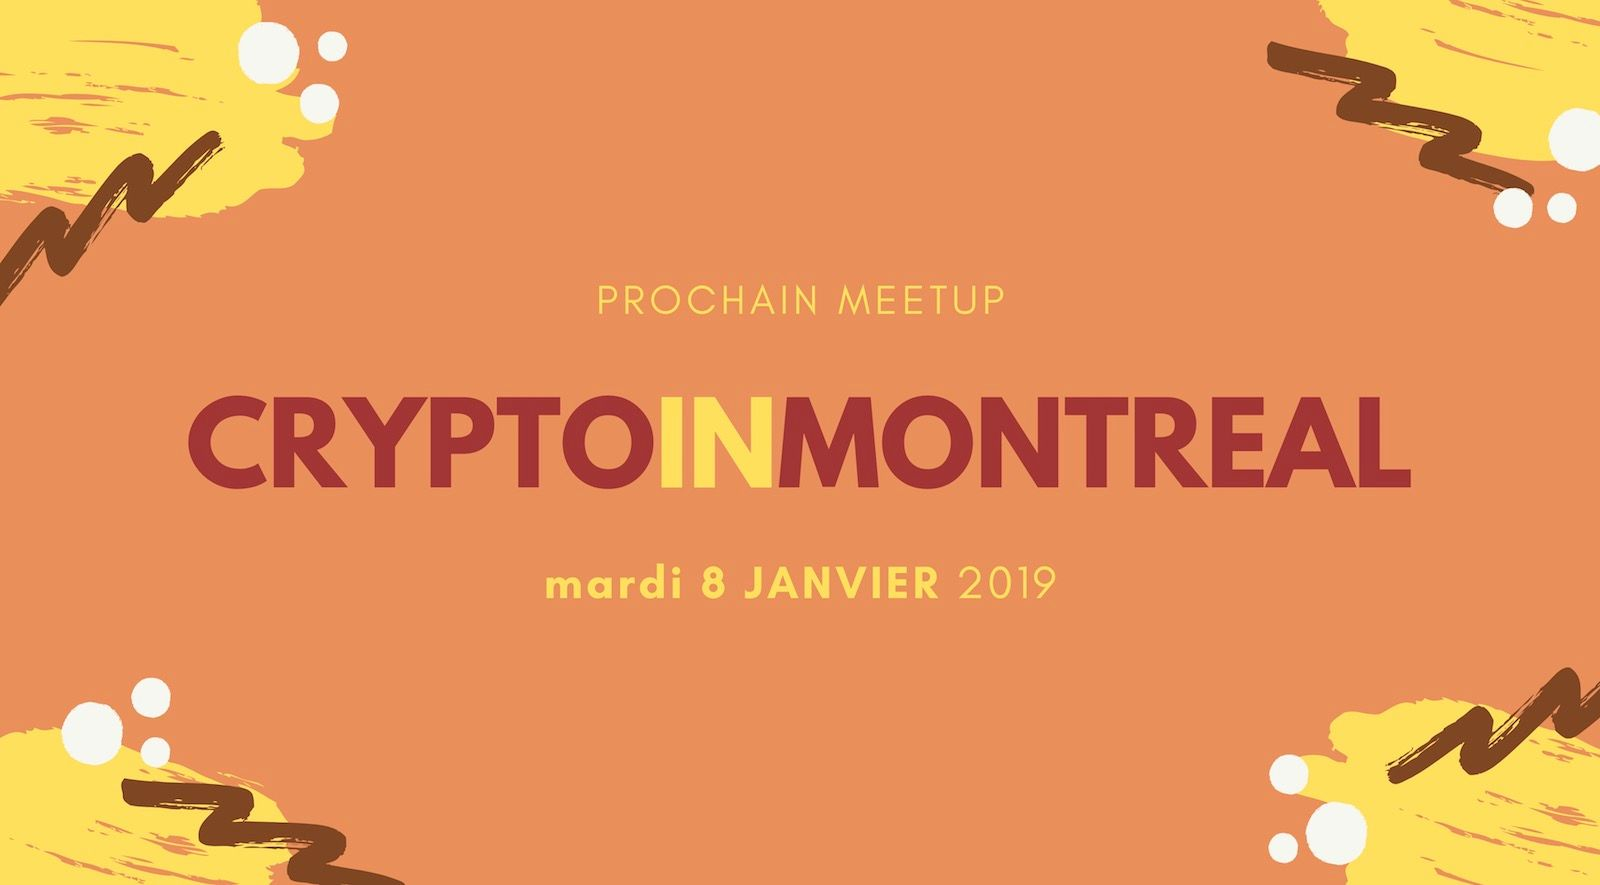 Les institutions arrivent dans le monde des cryptos | CryptoInMontreal #25